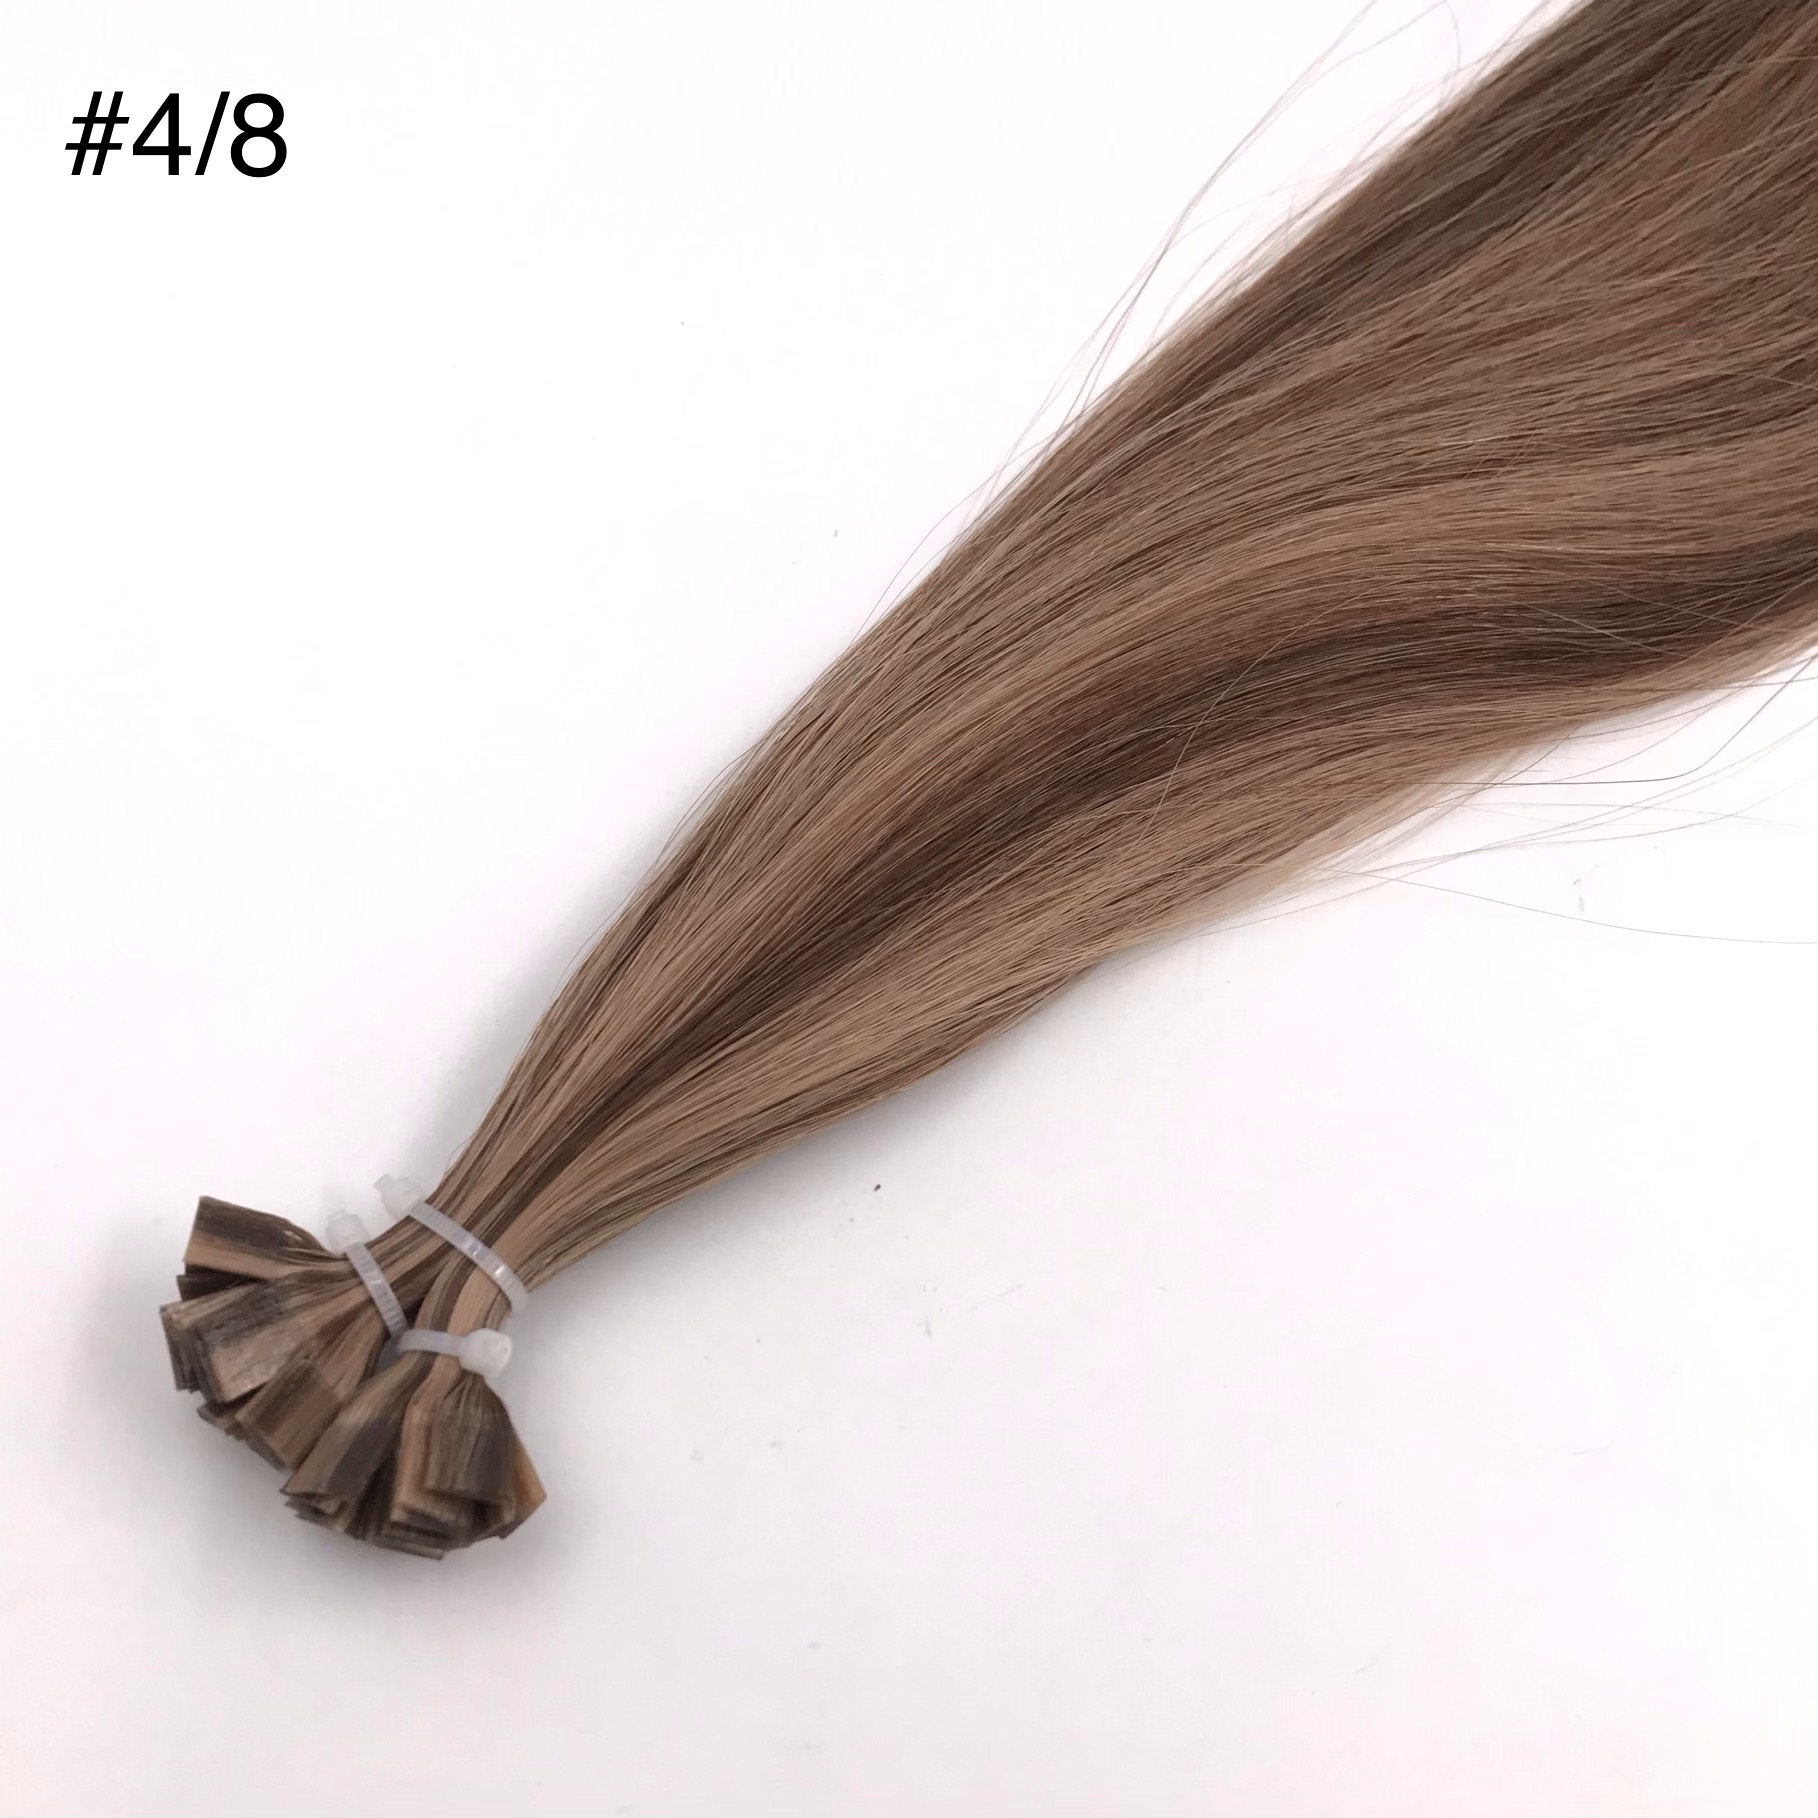 High-quality Hair Extensions Supplier Flat tip Piano color #4/8 J13